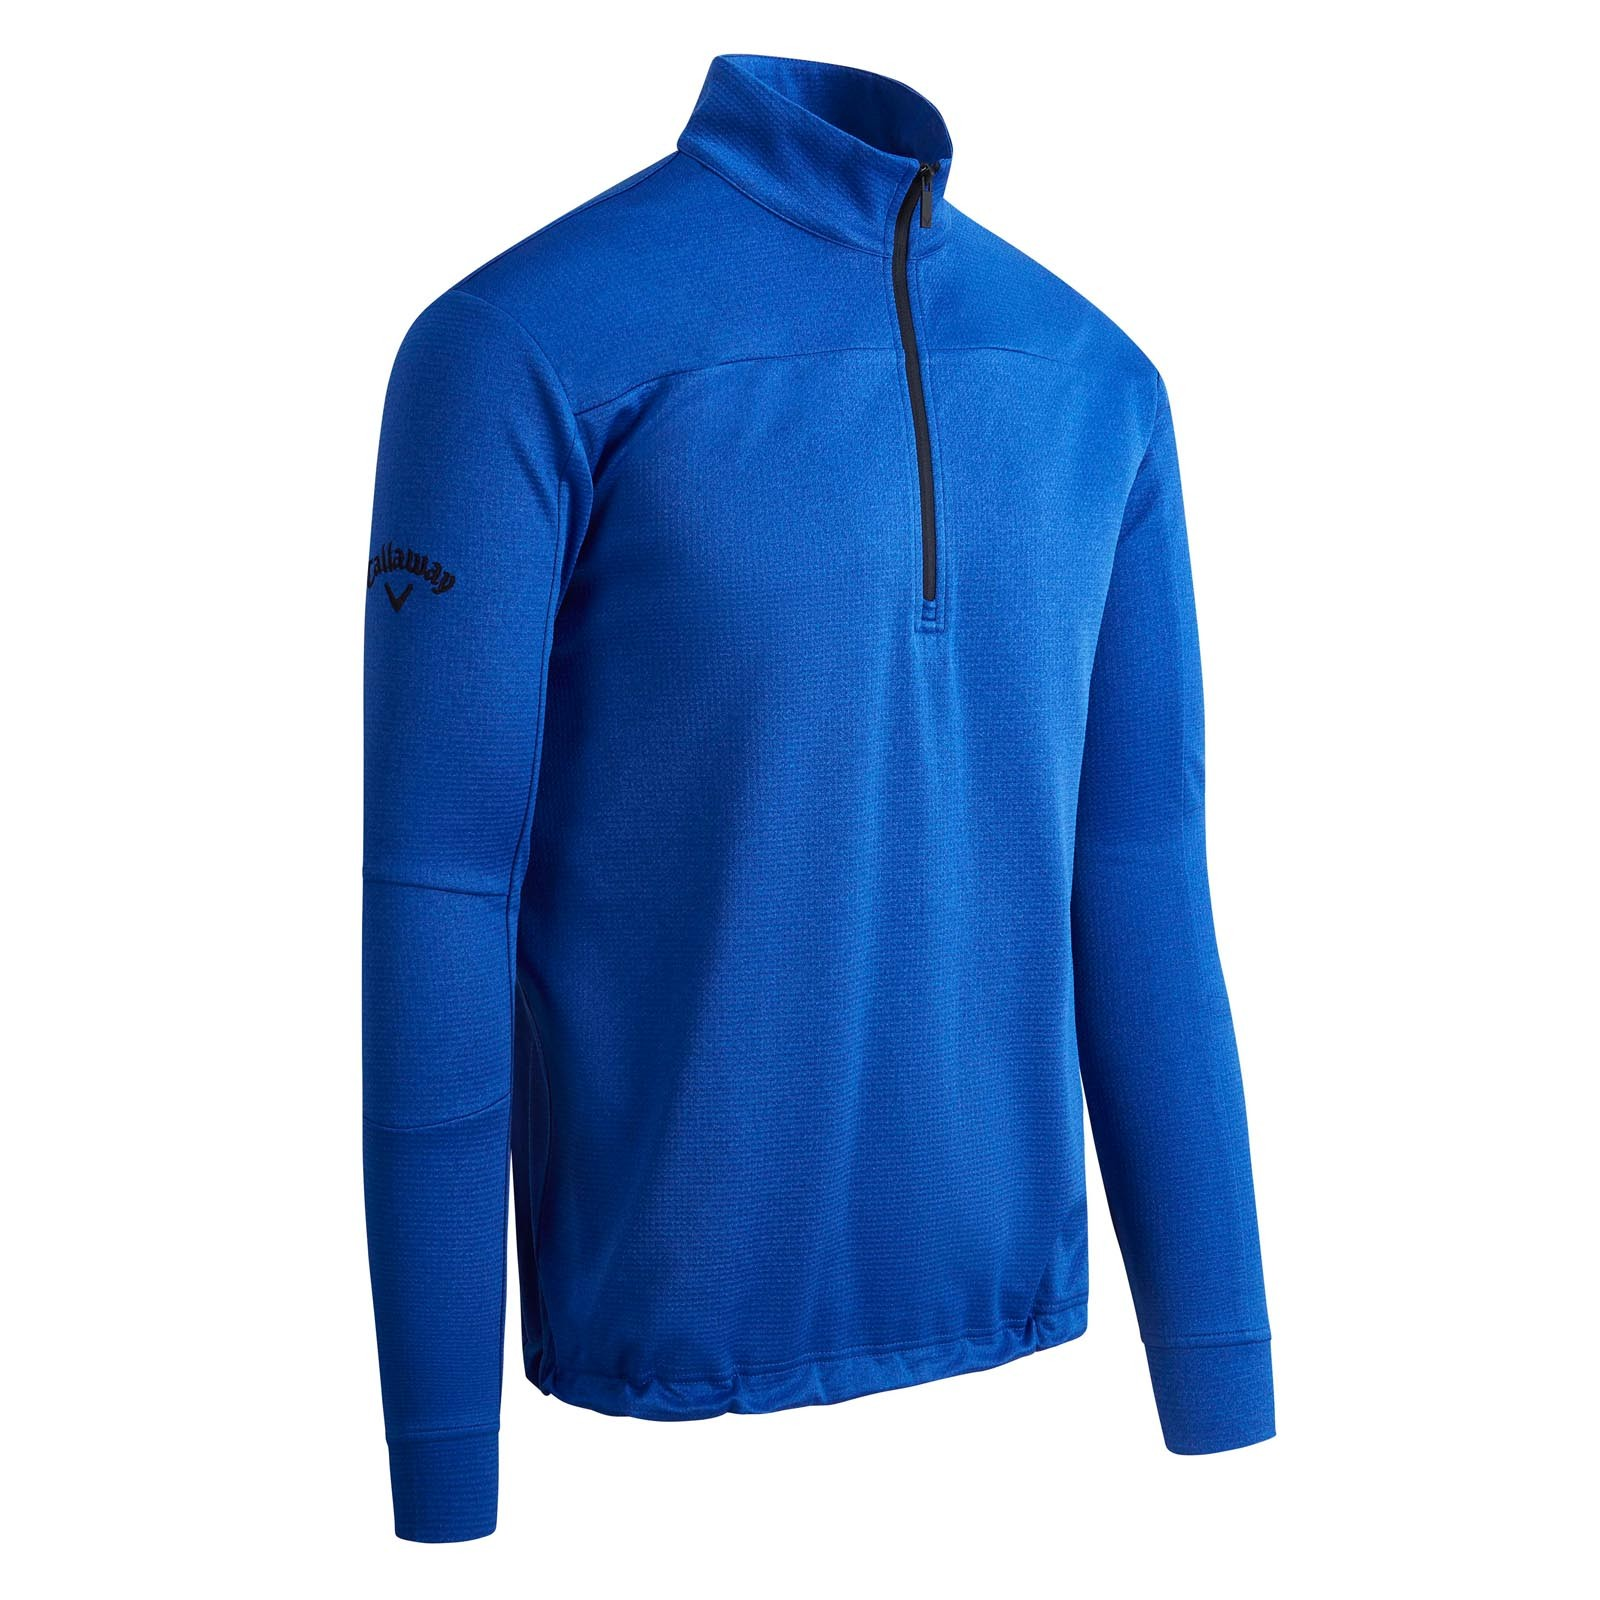 Callaway Pieced Waffle 1/4 Zip Pullovers